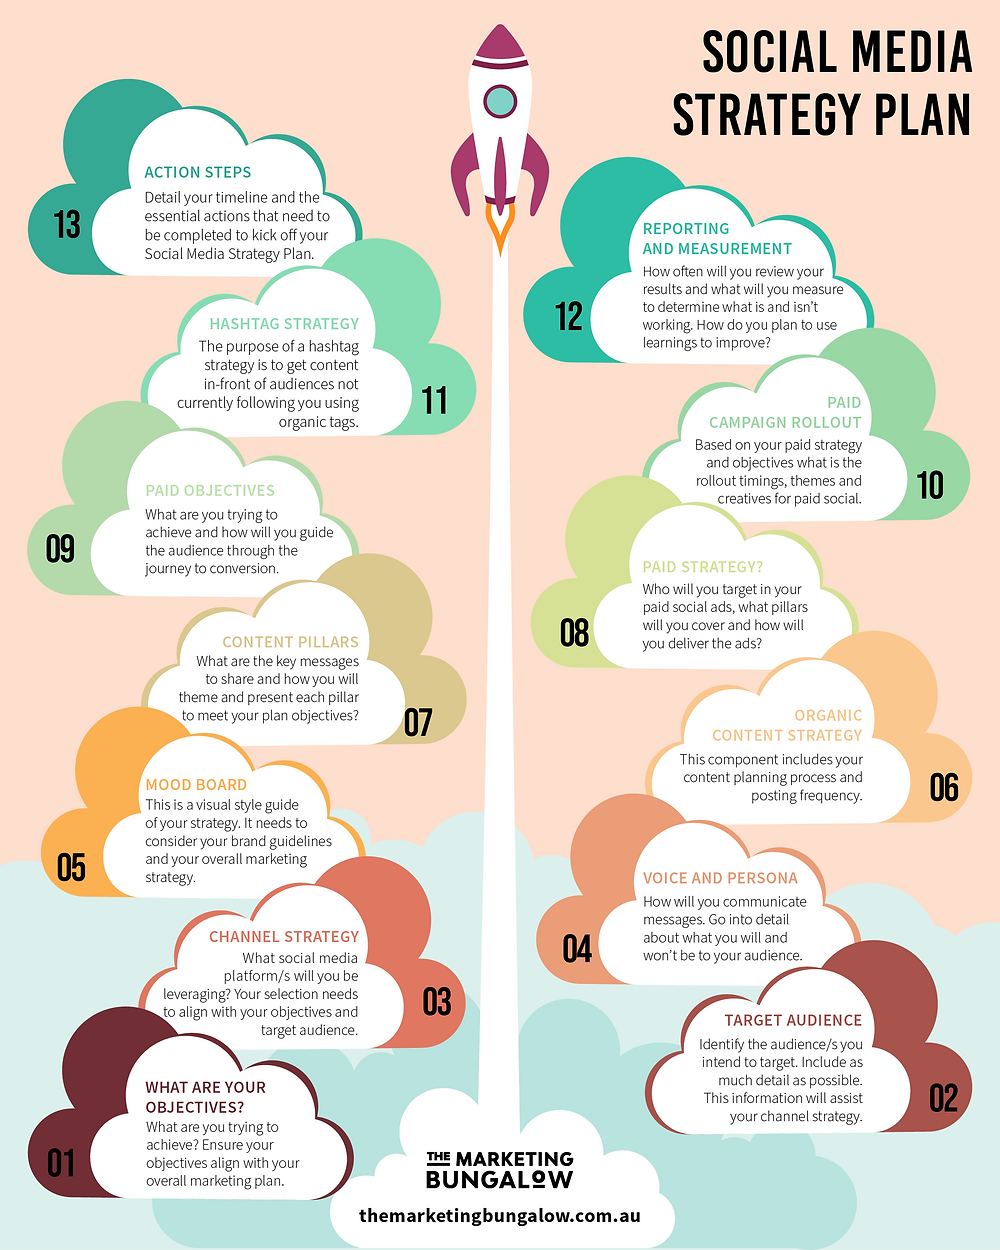 Social Media Strategy Plan Infographic